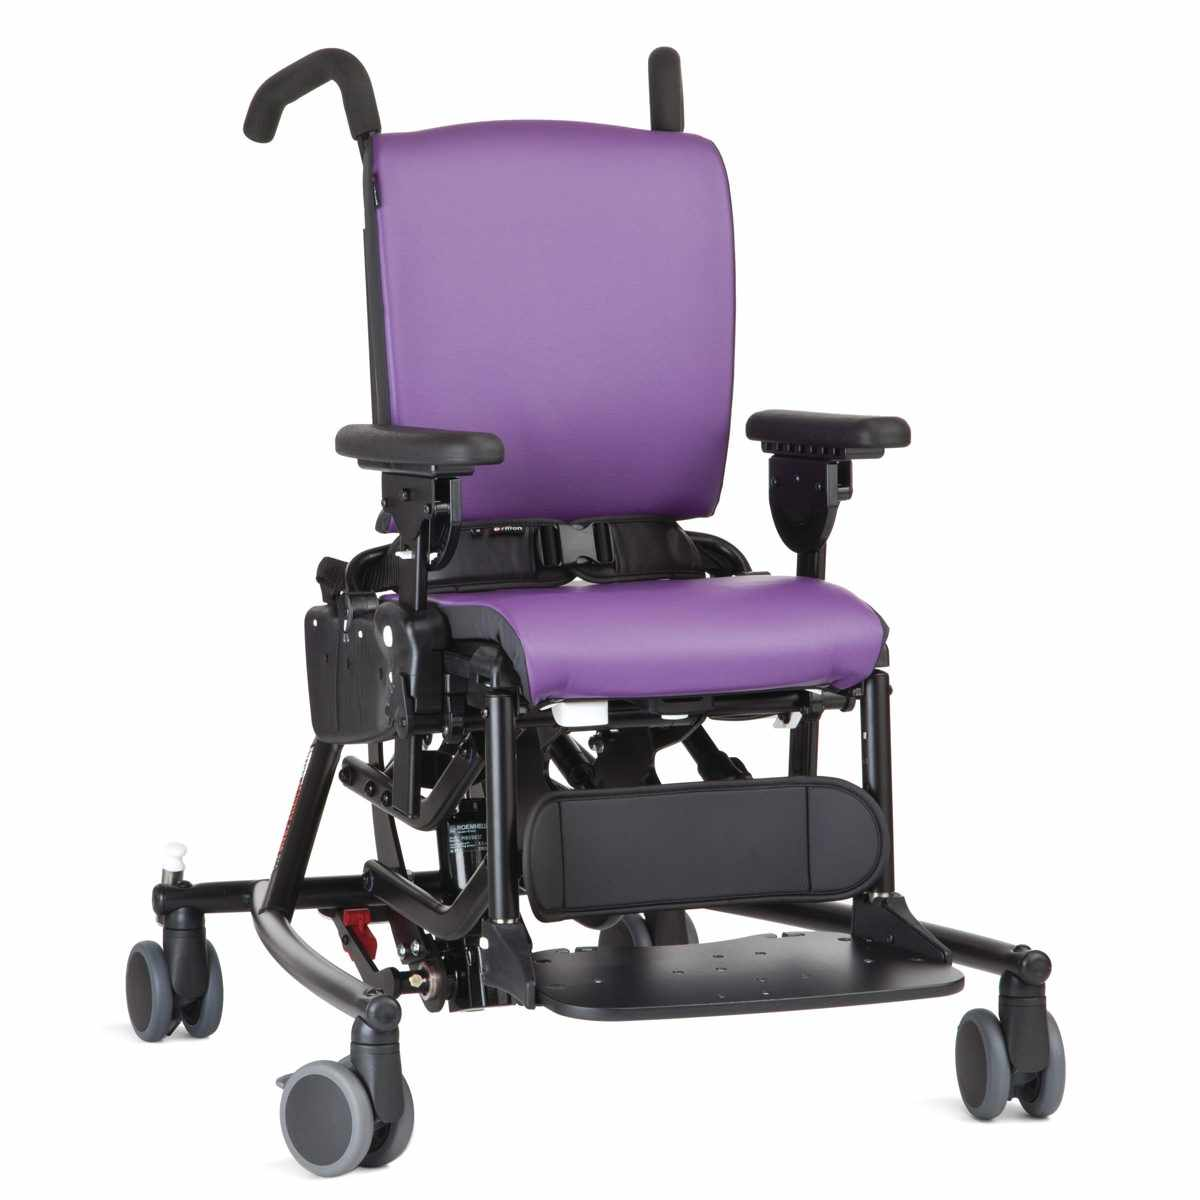 Rifton small activity chair with hi-lo base